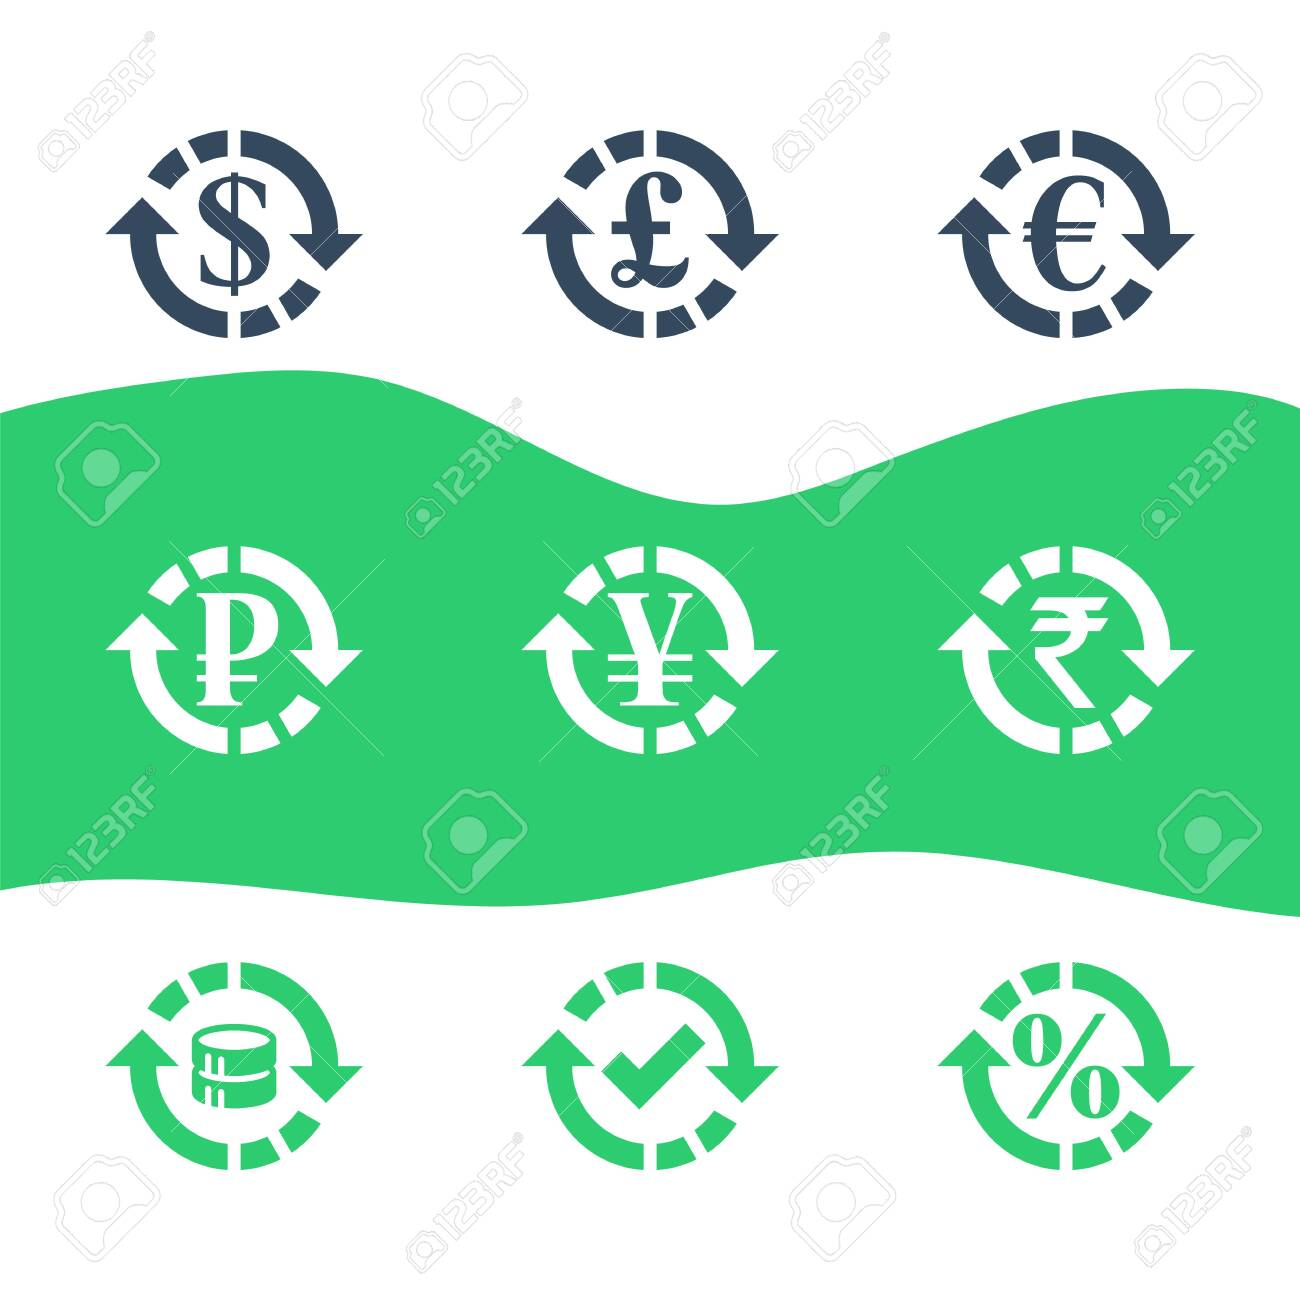 Currency exchange, financial services, pound and euro, dollar sign in circle arrow, ruble and rupee symbol, interest rate, debt refinance, return money, vector flat icon set - 144943752